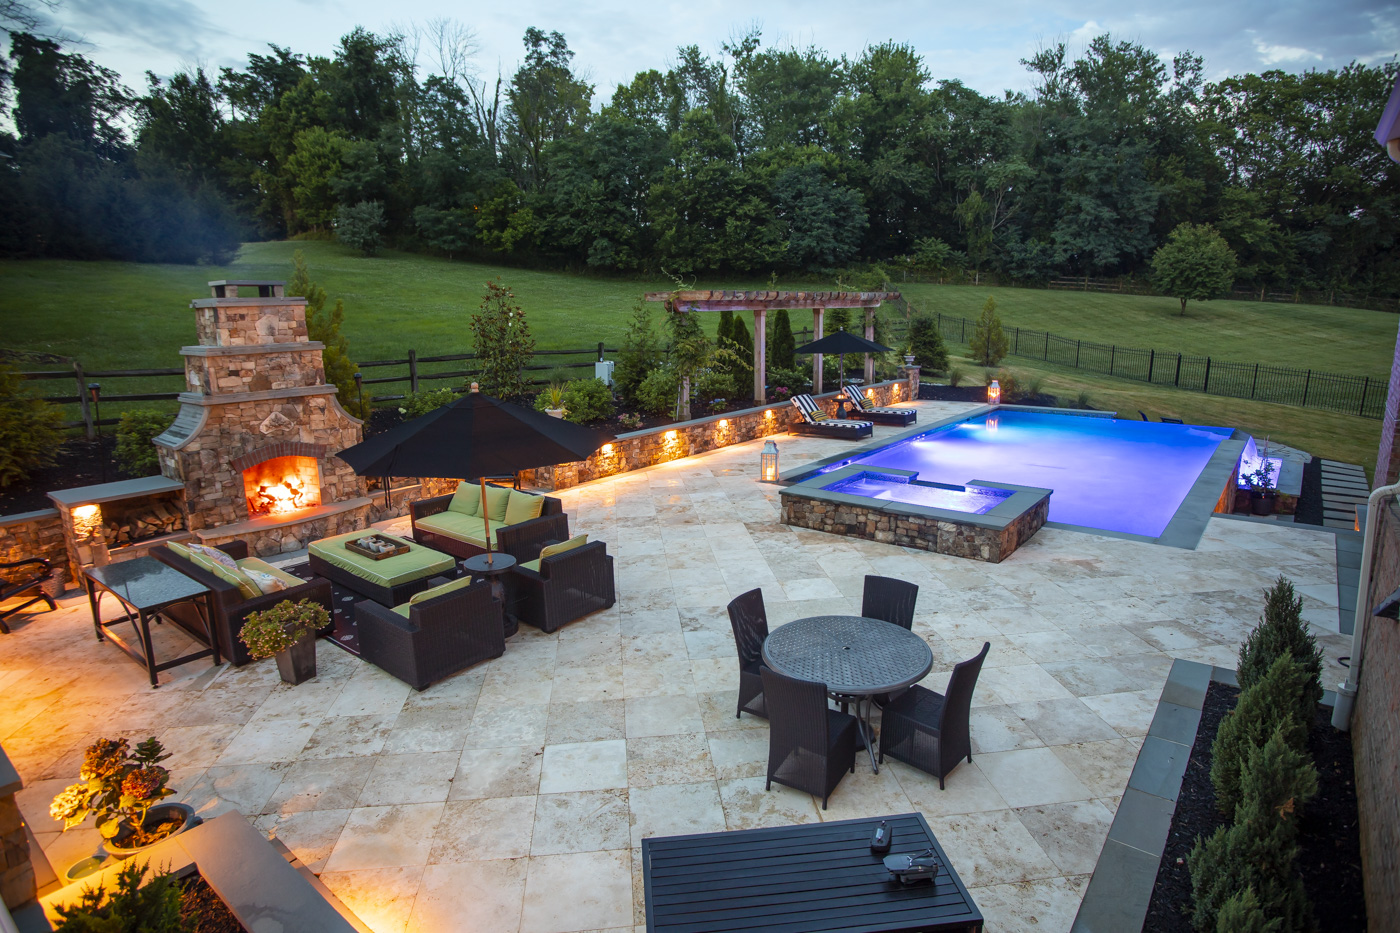 pool pictures and ideas to inspire your